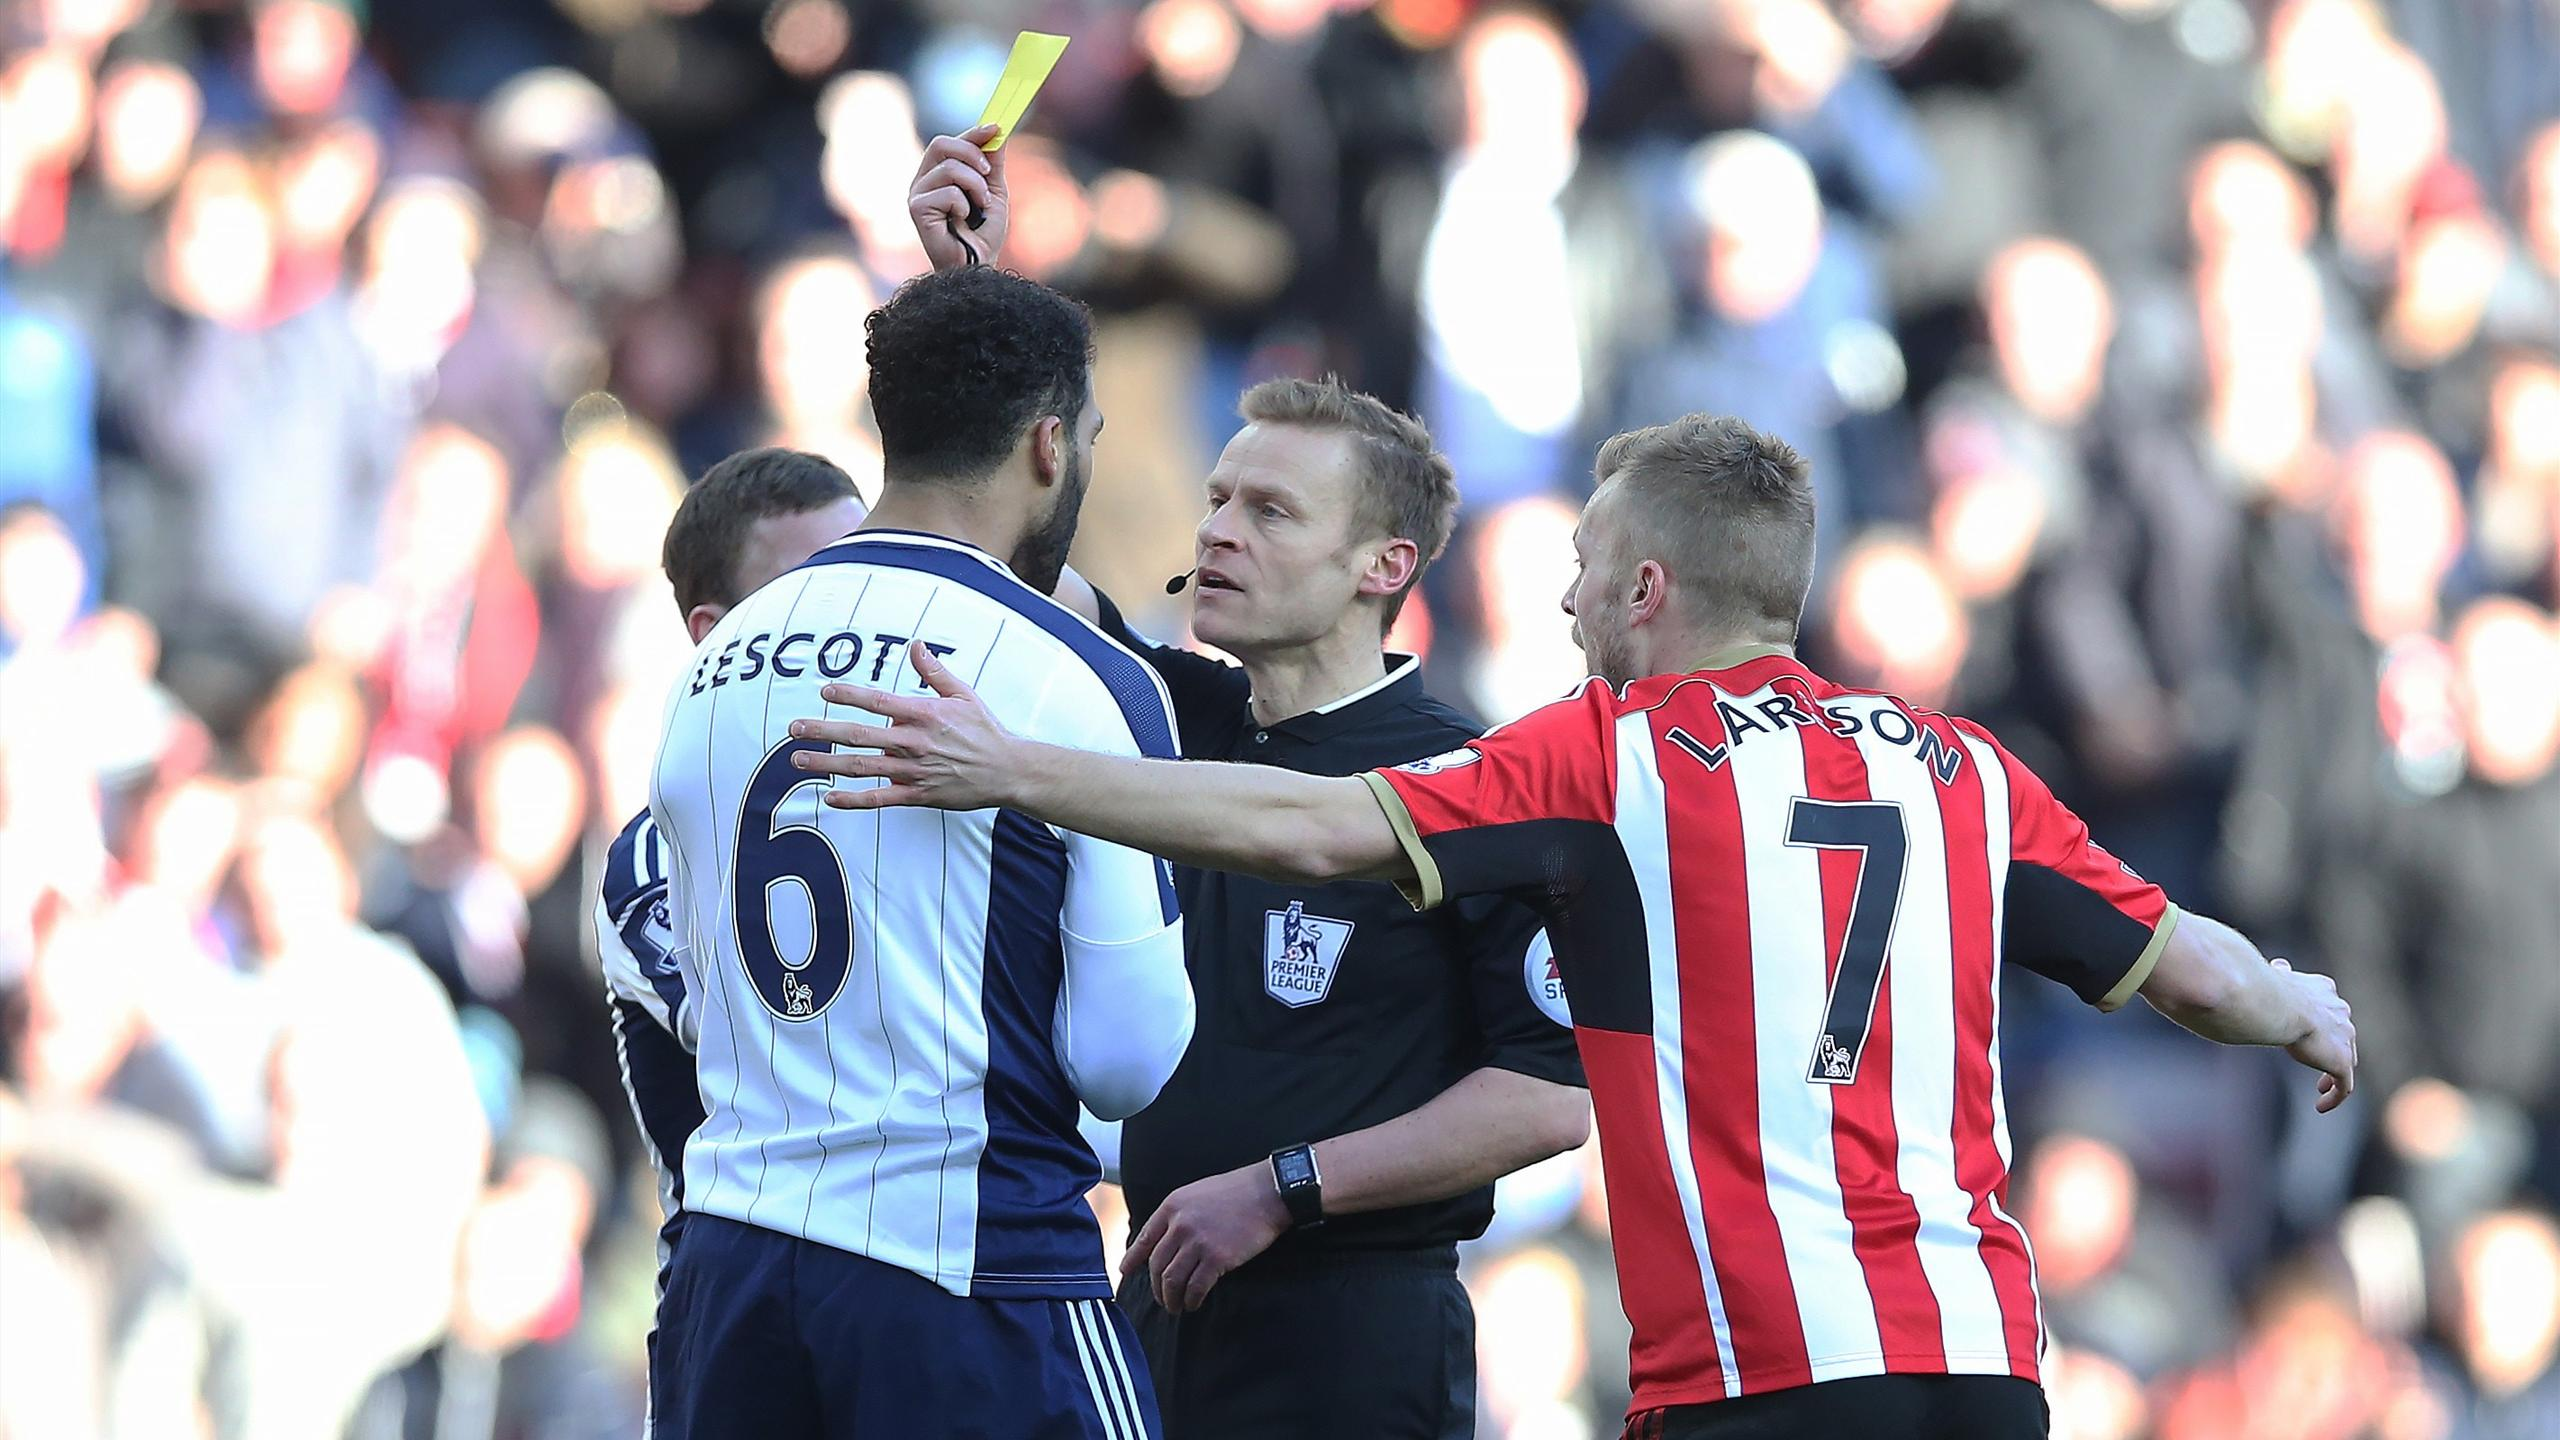 Video: Sunderland vs West Bromwich Albion